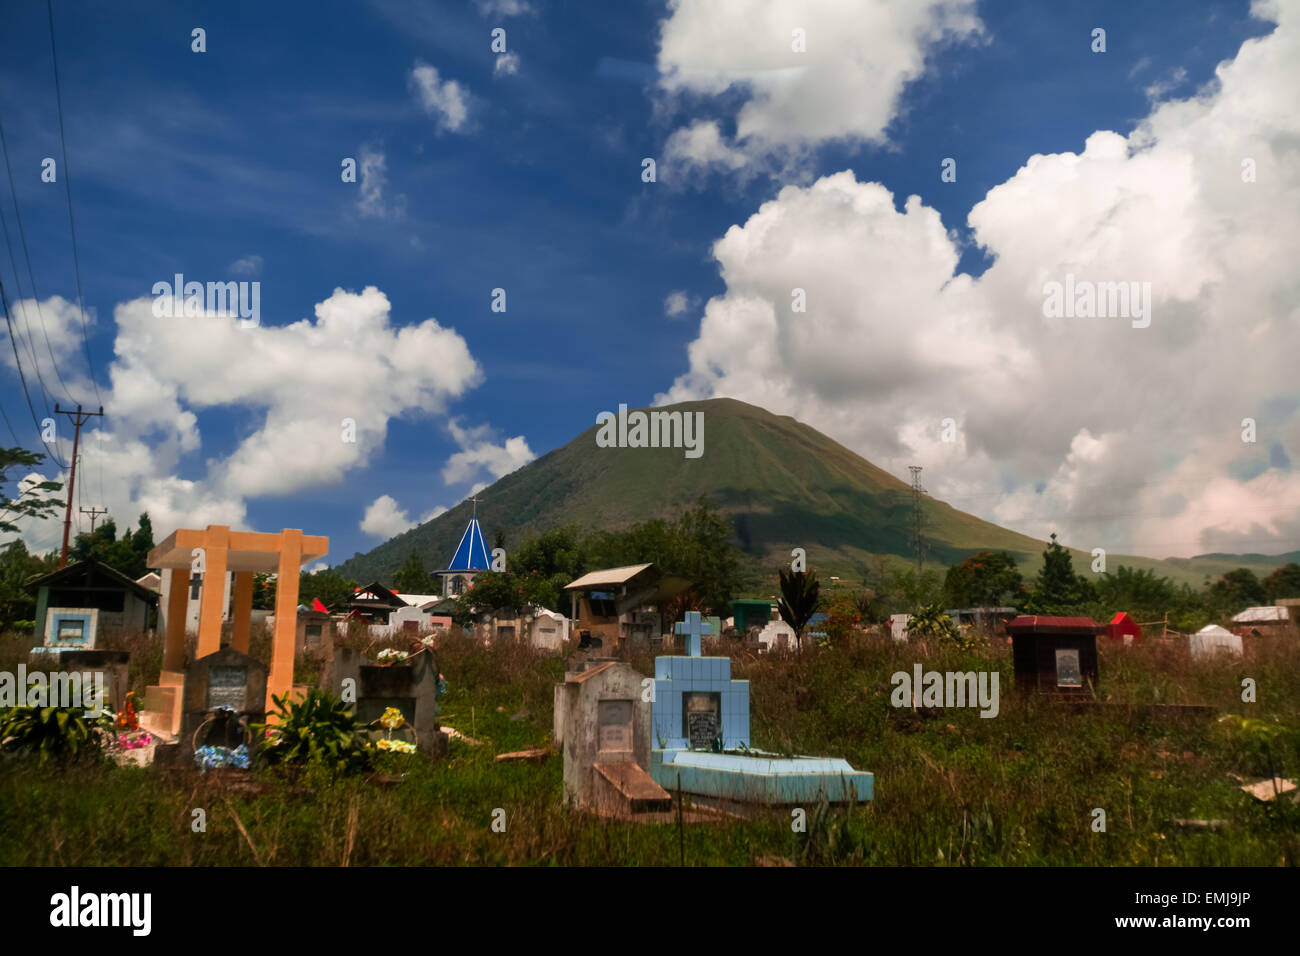 Graveyard below Mount Lokon, North Sulawesi, Indonesia. - Stock Image